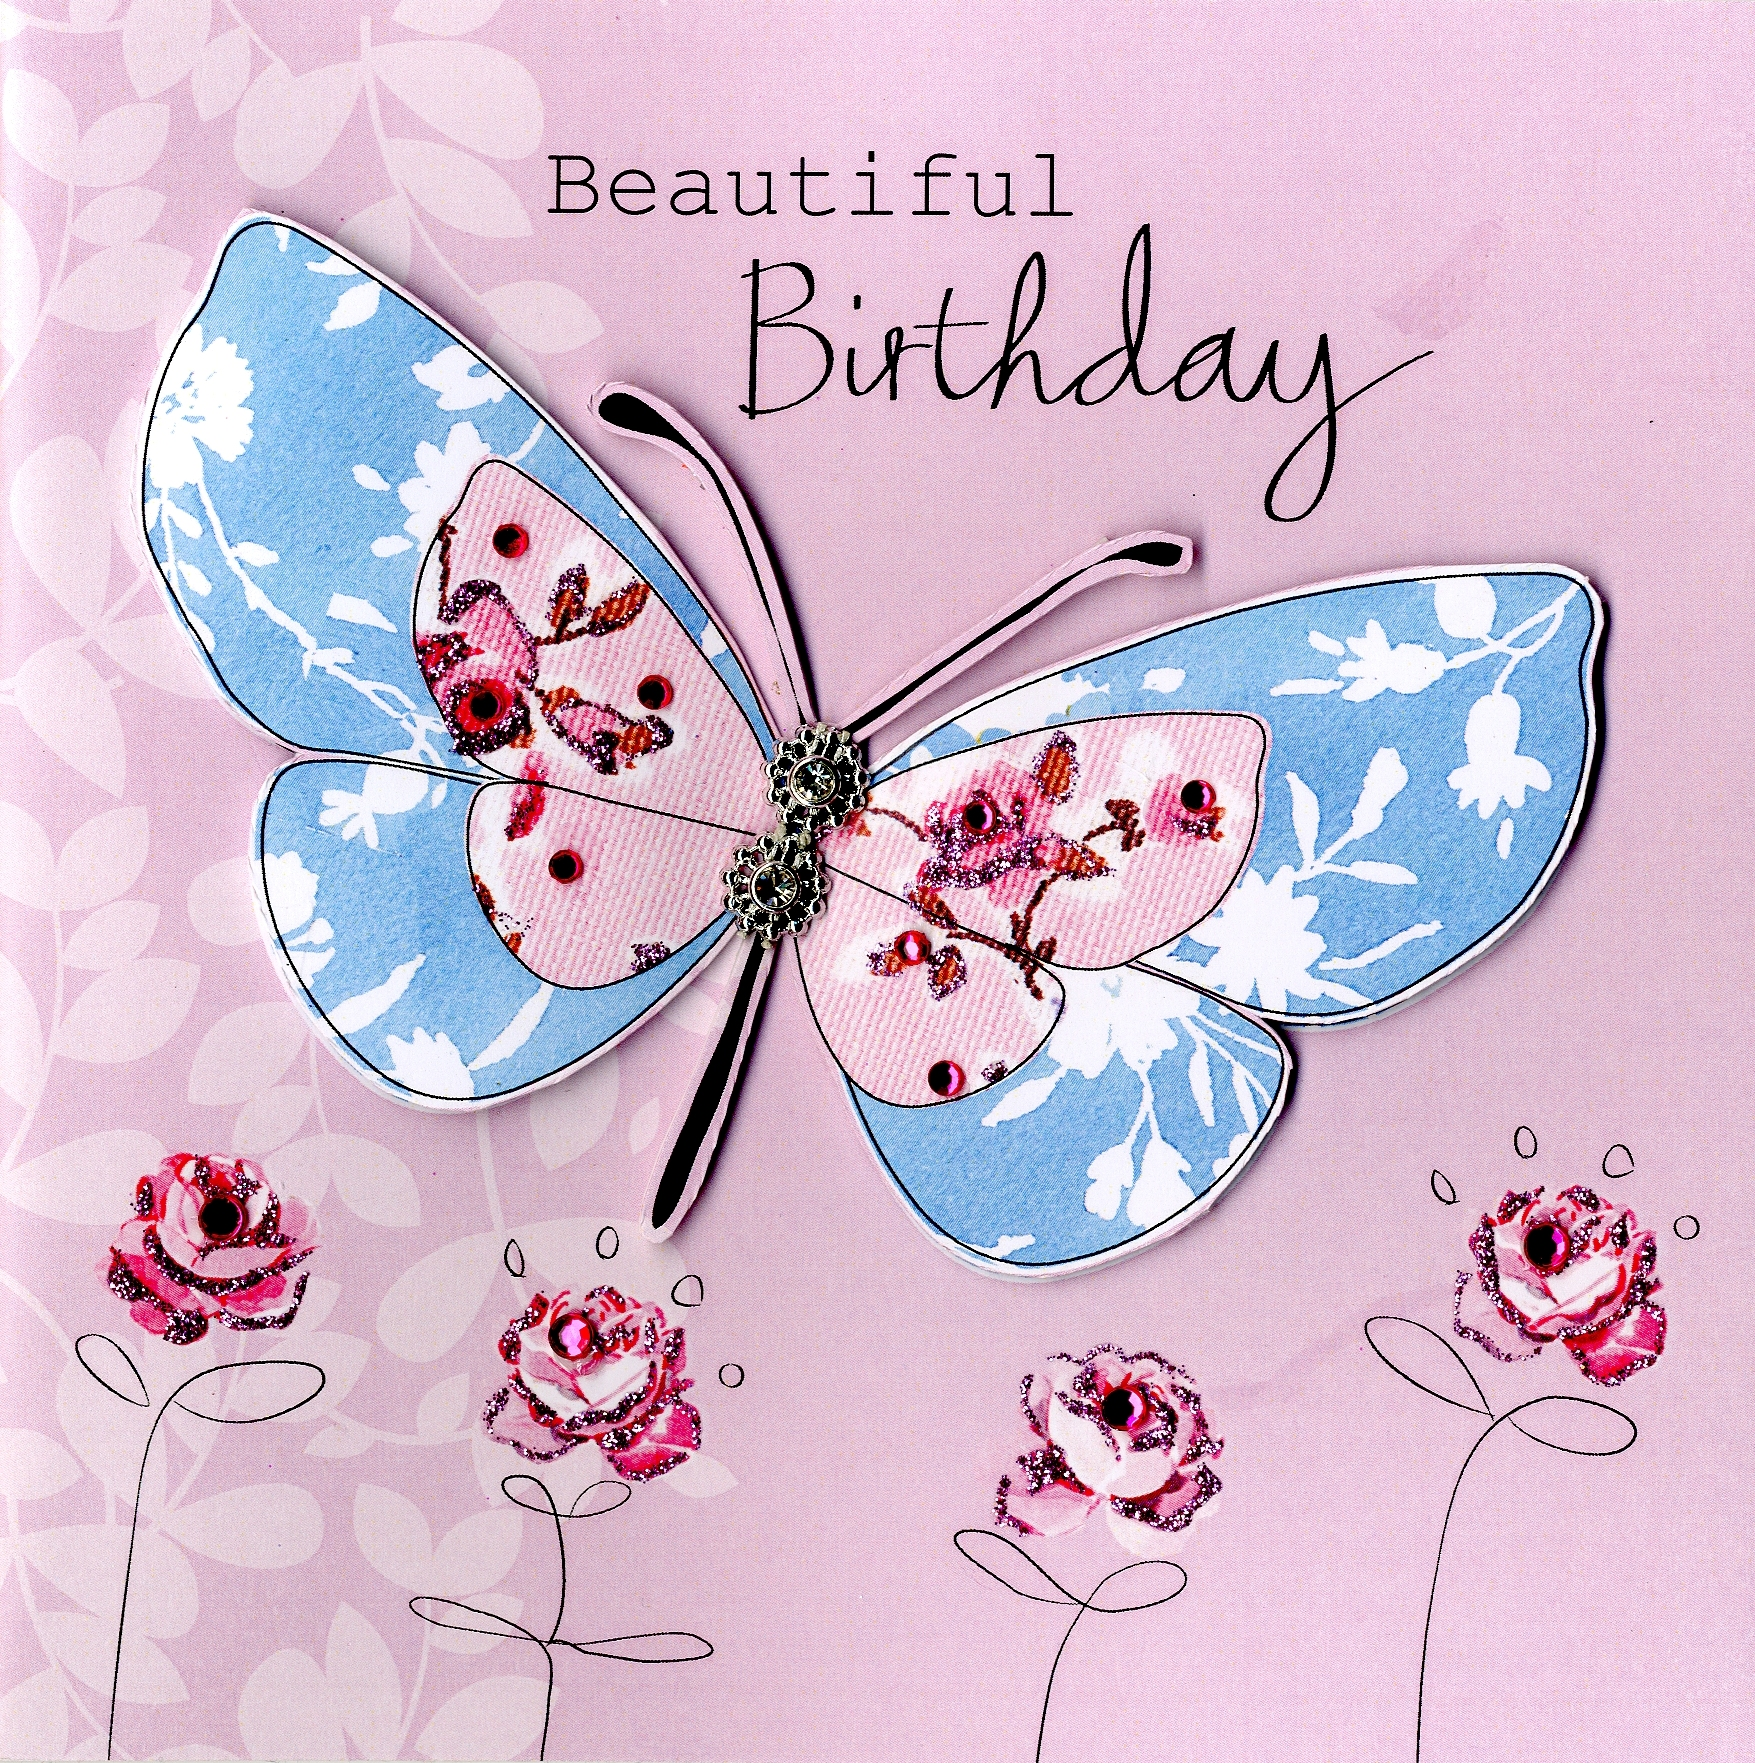 Embellished Beautiful Butterfly Birthday Card Cards – Butterfly Birthday Card